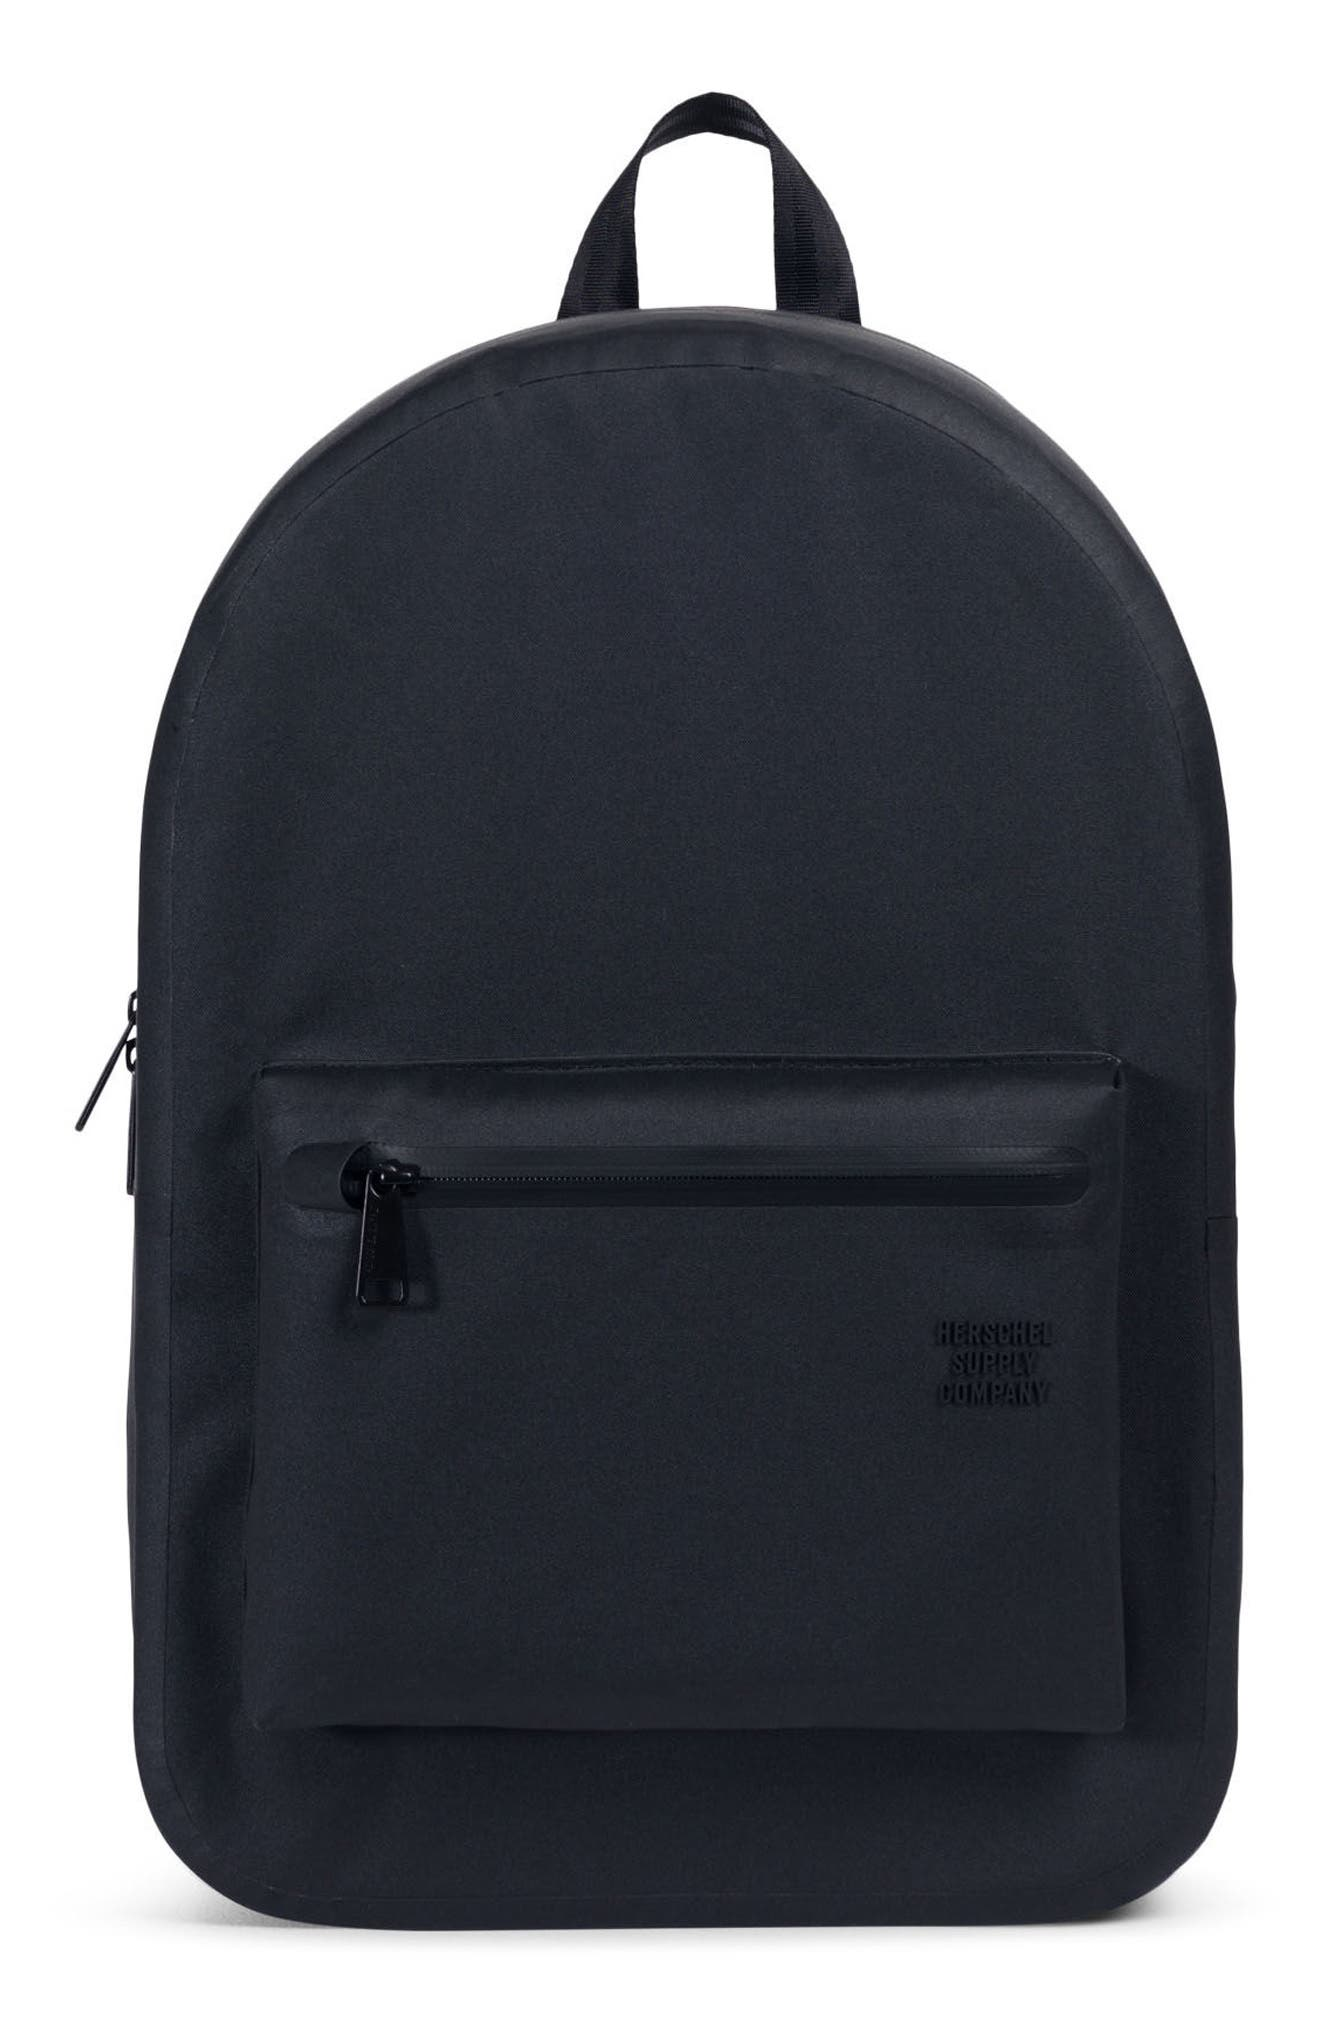 Settlement Studio Backpack,                             Main thumbnail 1, color,                             Black